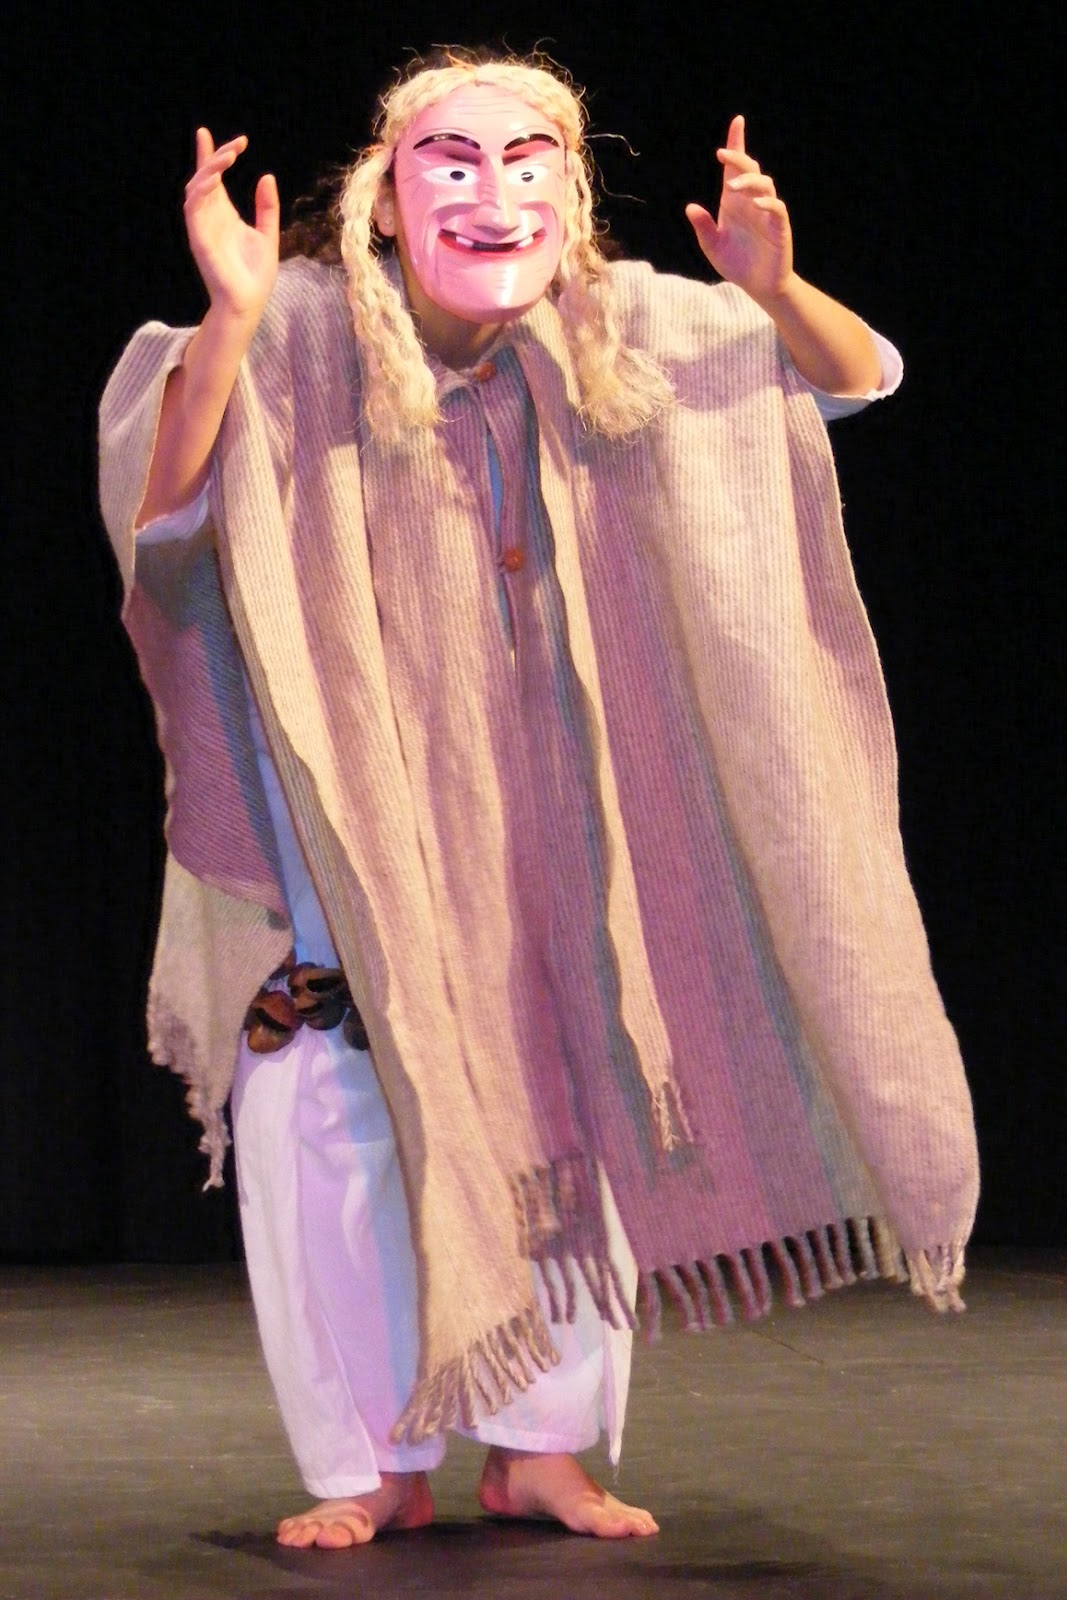 La Luna (théâtre) : (théâtre), Masks,, Movement, Imaginative, Storytelling, Milagro, Theatre